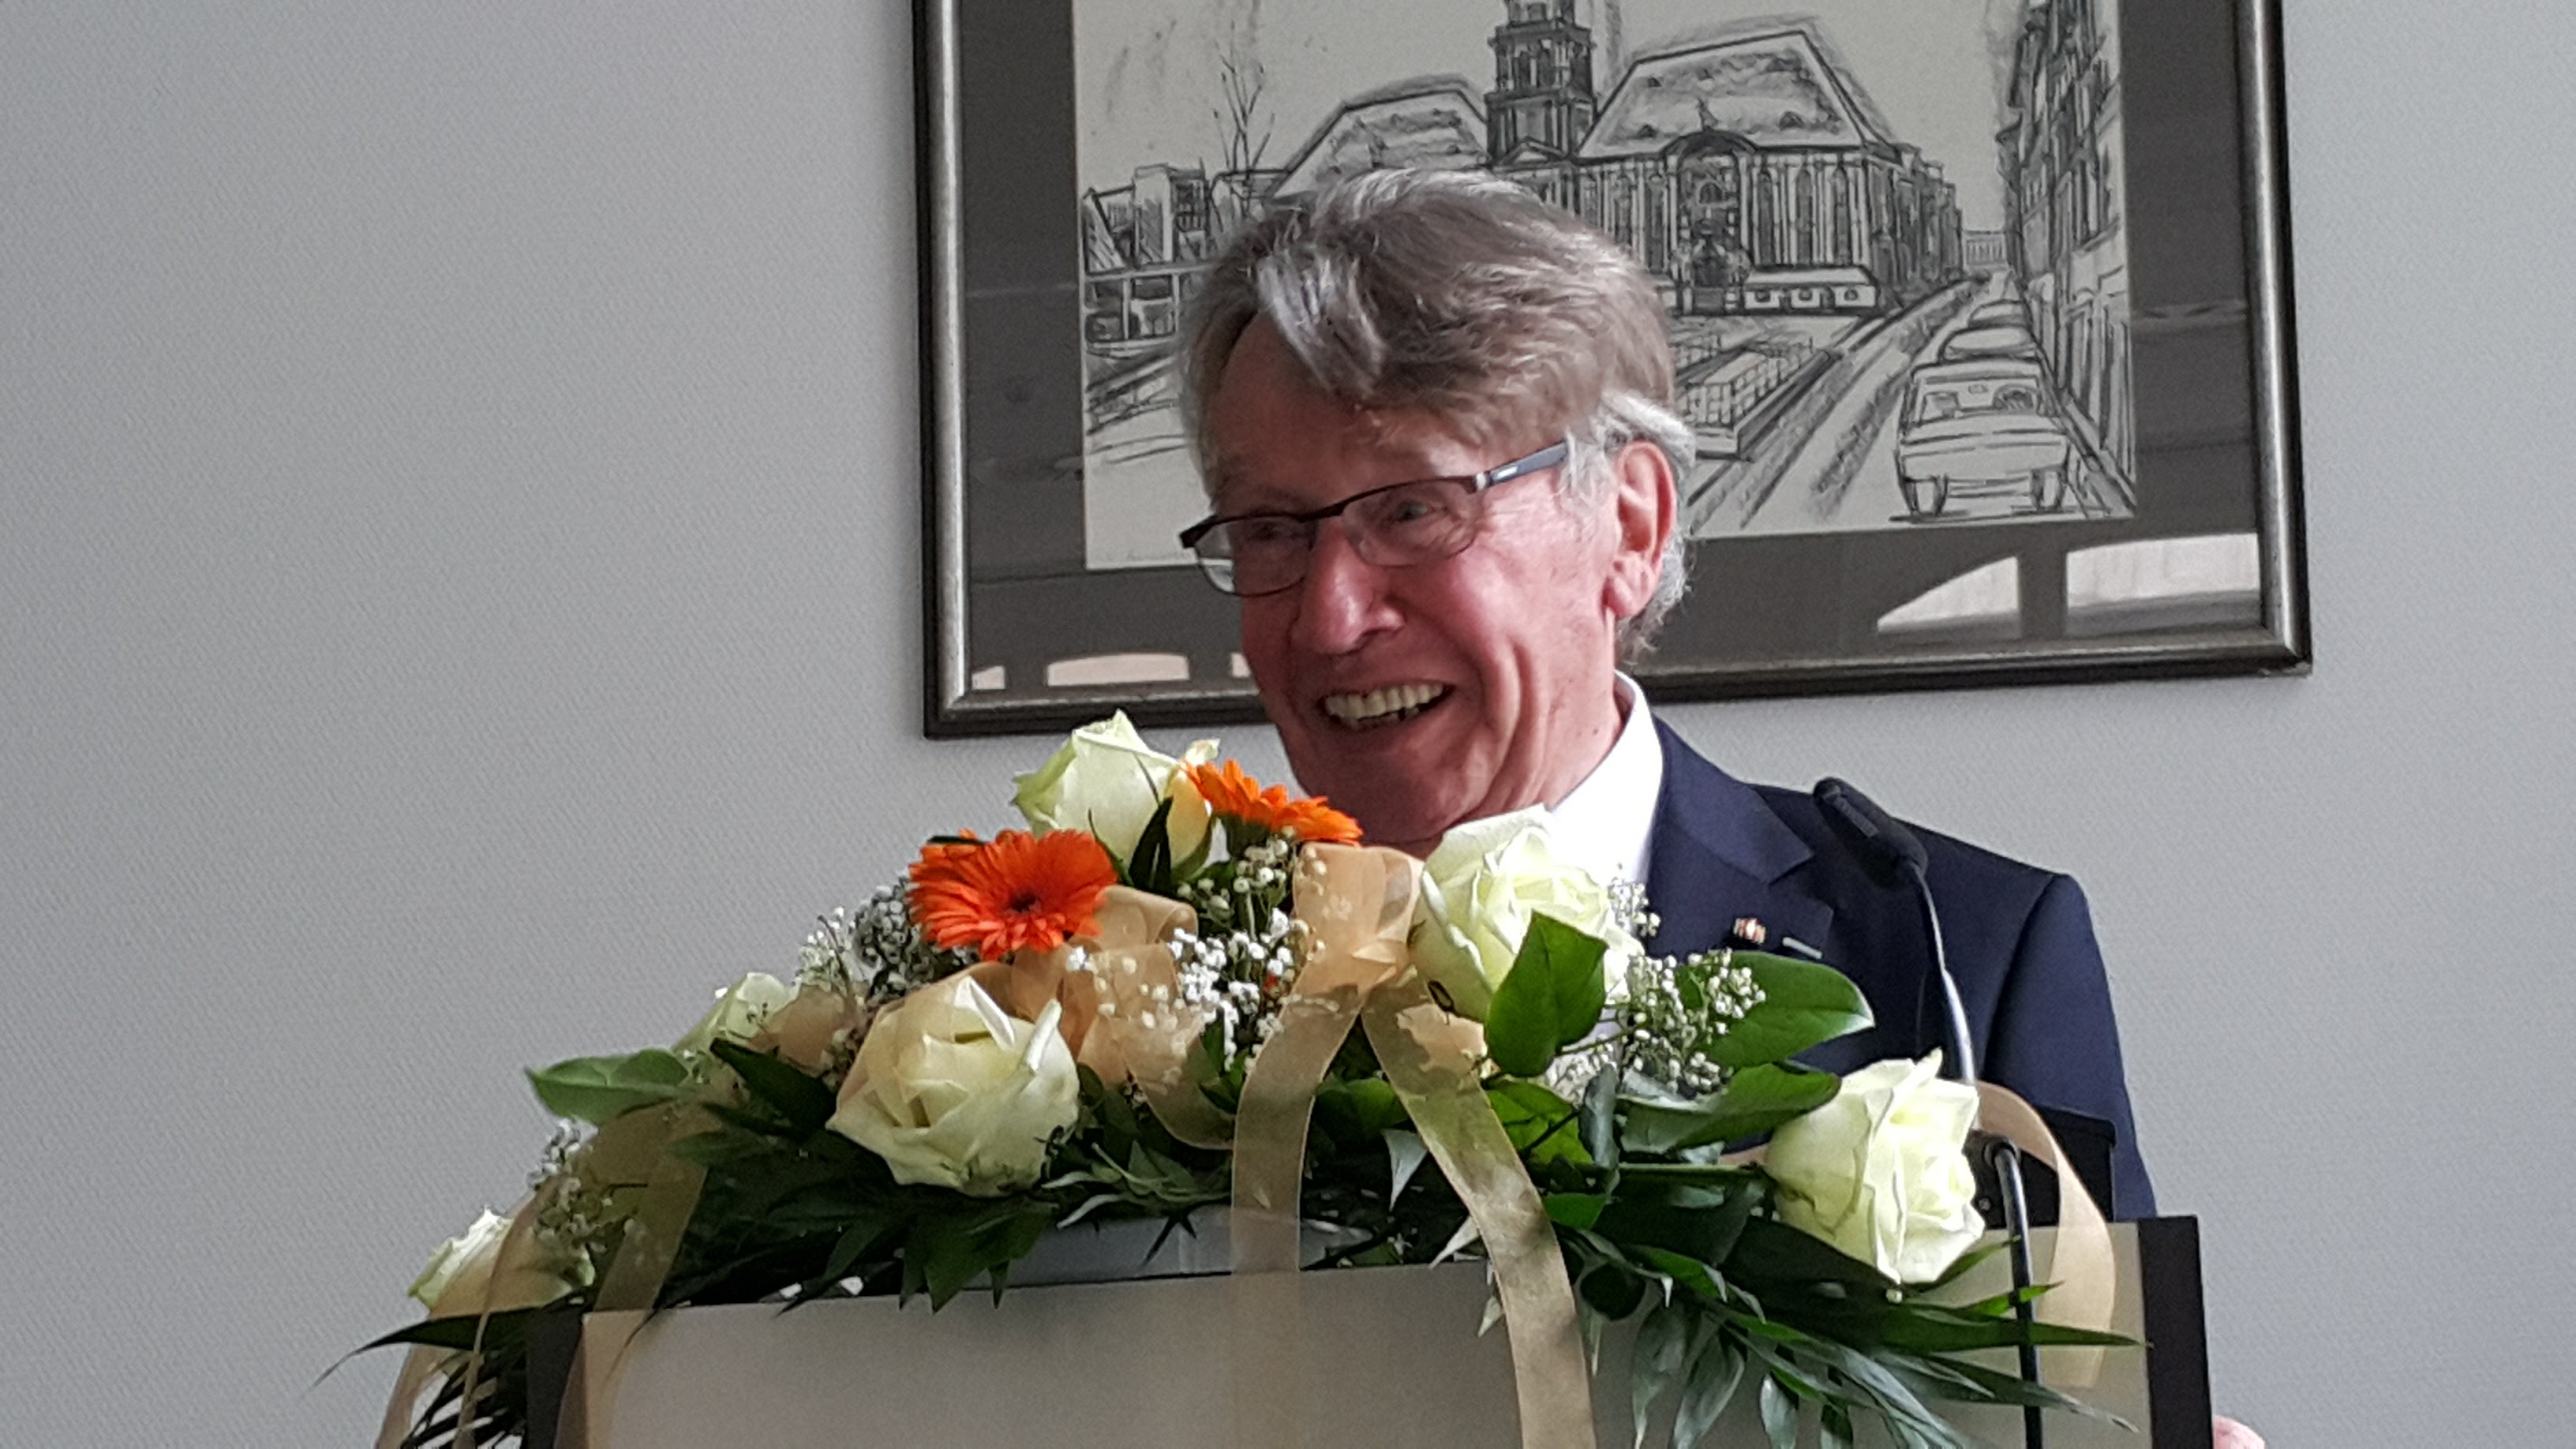 Celebration of Prof. Dr. Gerhard Stickel's 80th birthday at IDS